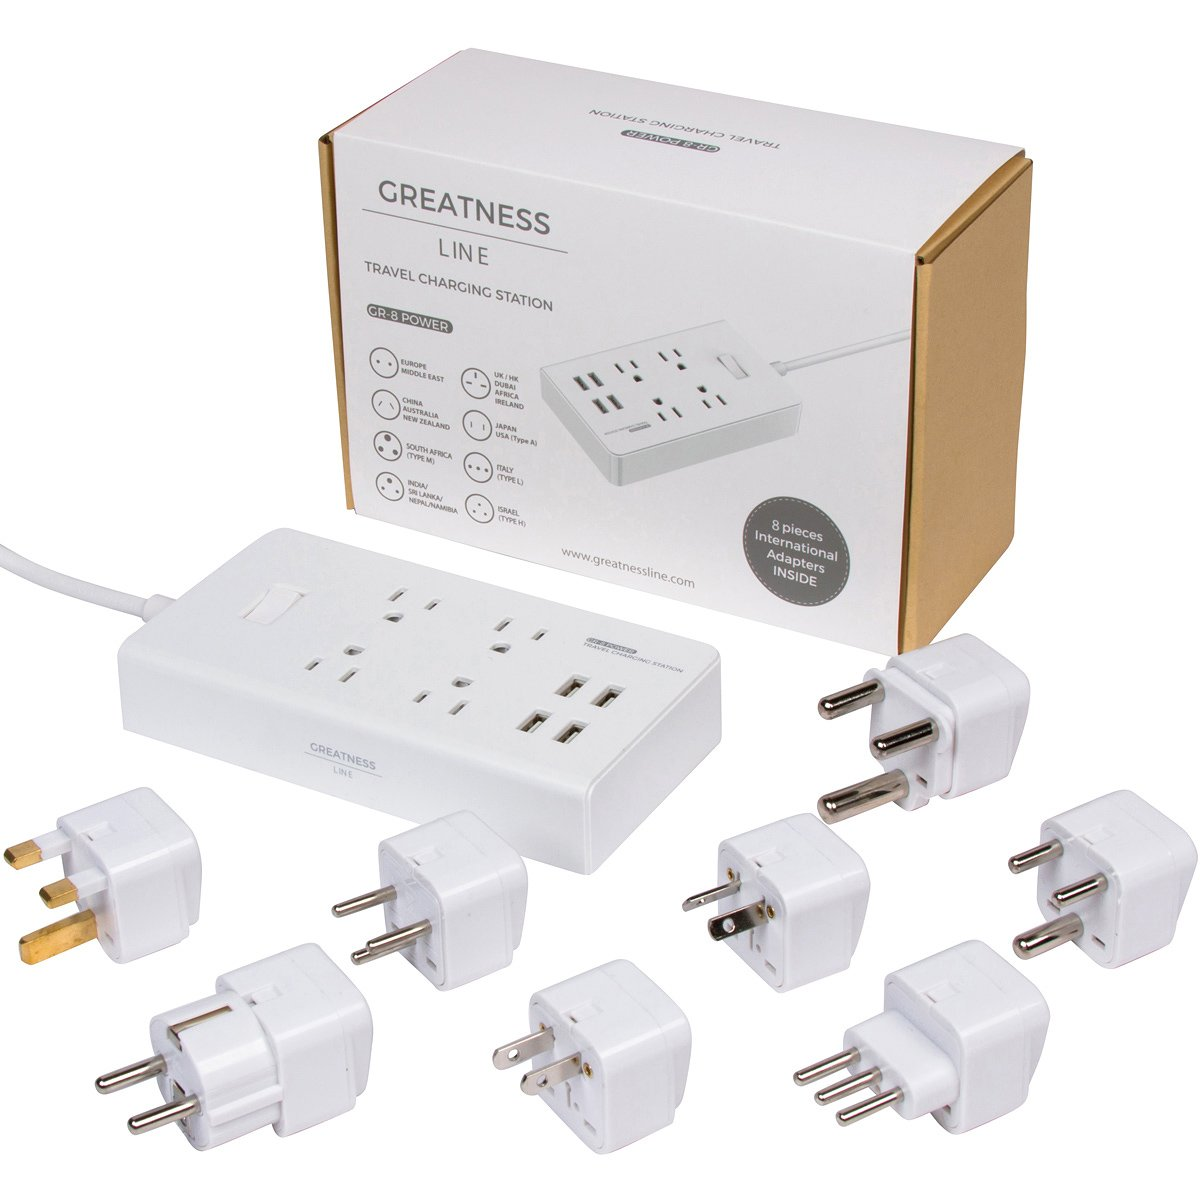 Greatness Line GR-8 Power Compact & Slim Travel Charging Station - International Power Adapter - Surge Protector - Power Strip with 4 Intelligent USB - Free Bonus Included by Greatness Line (Image #1)